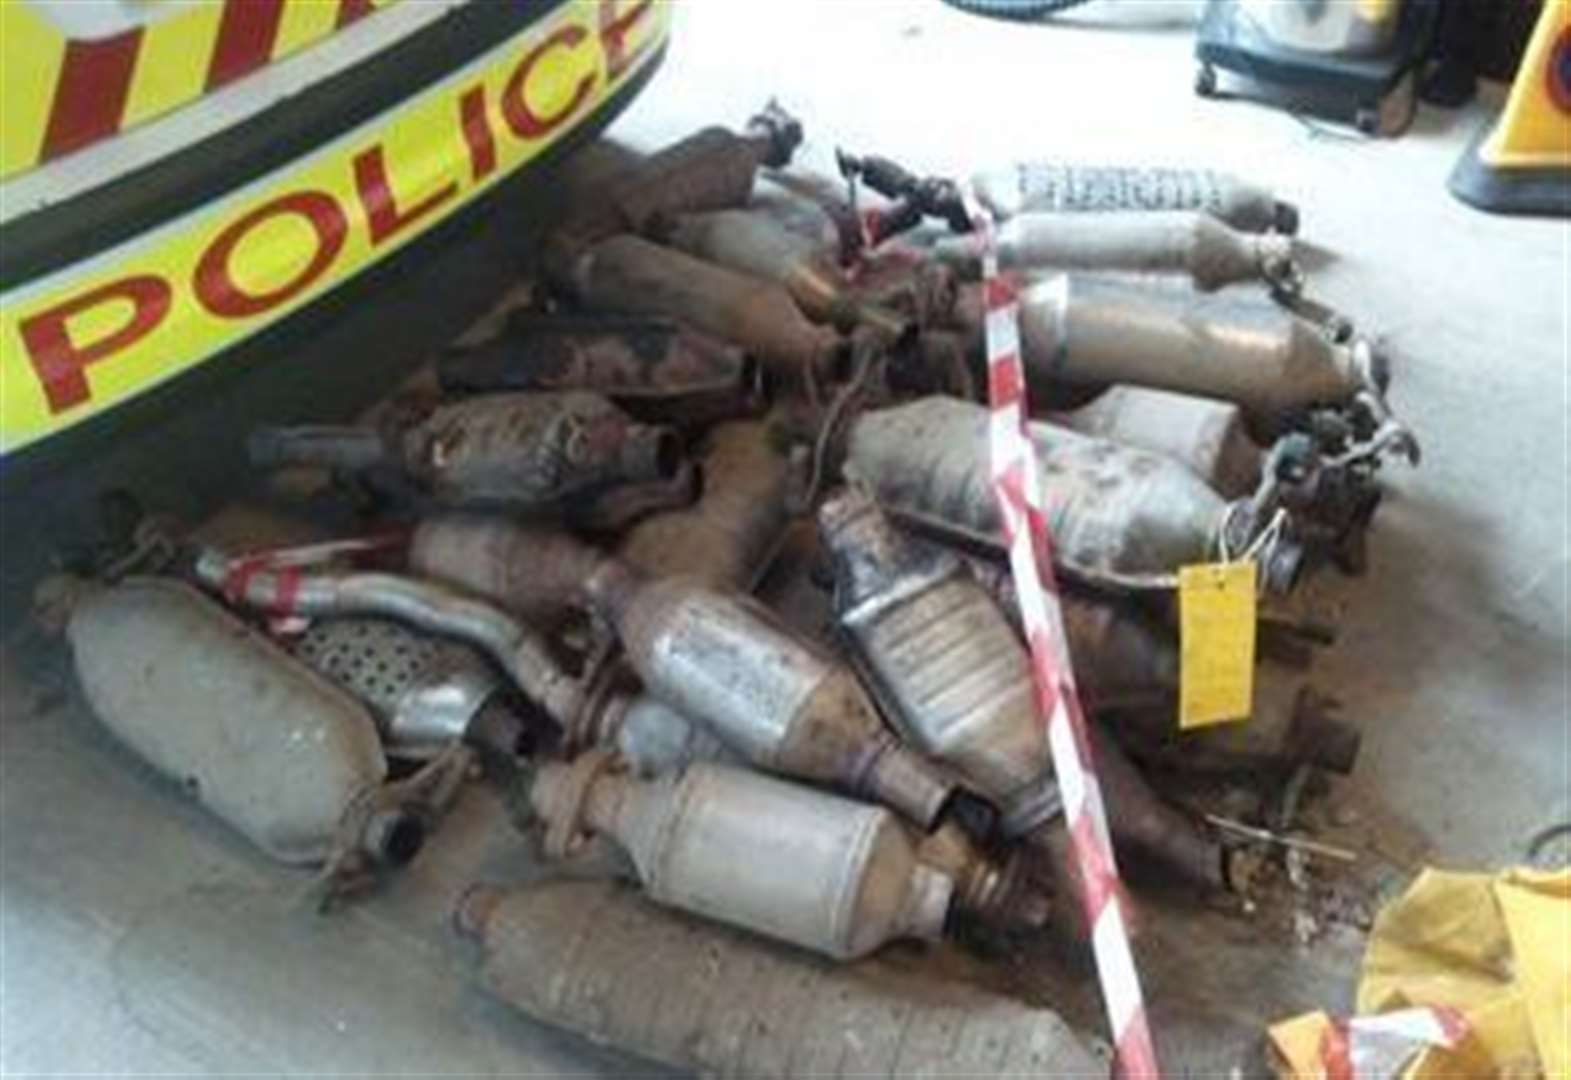 Police urge vigilance after catalytic converter thefts